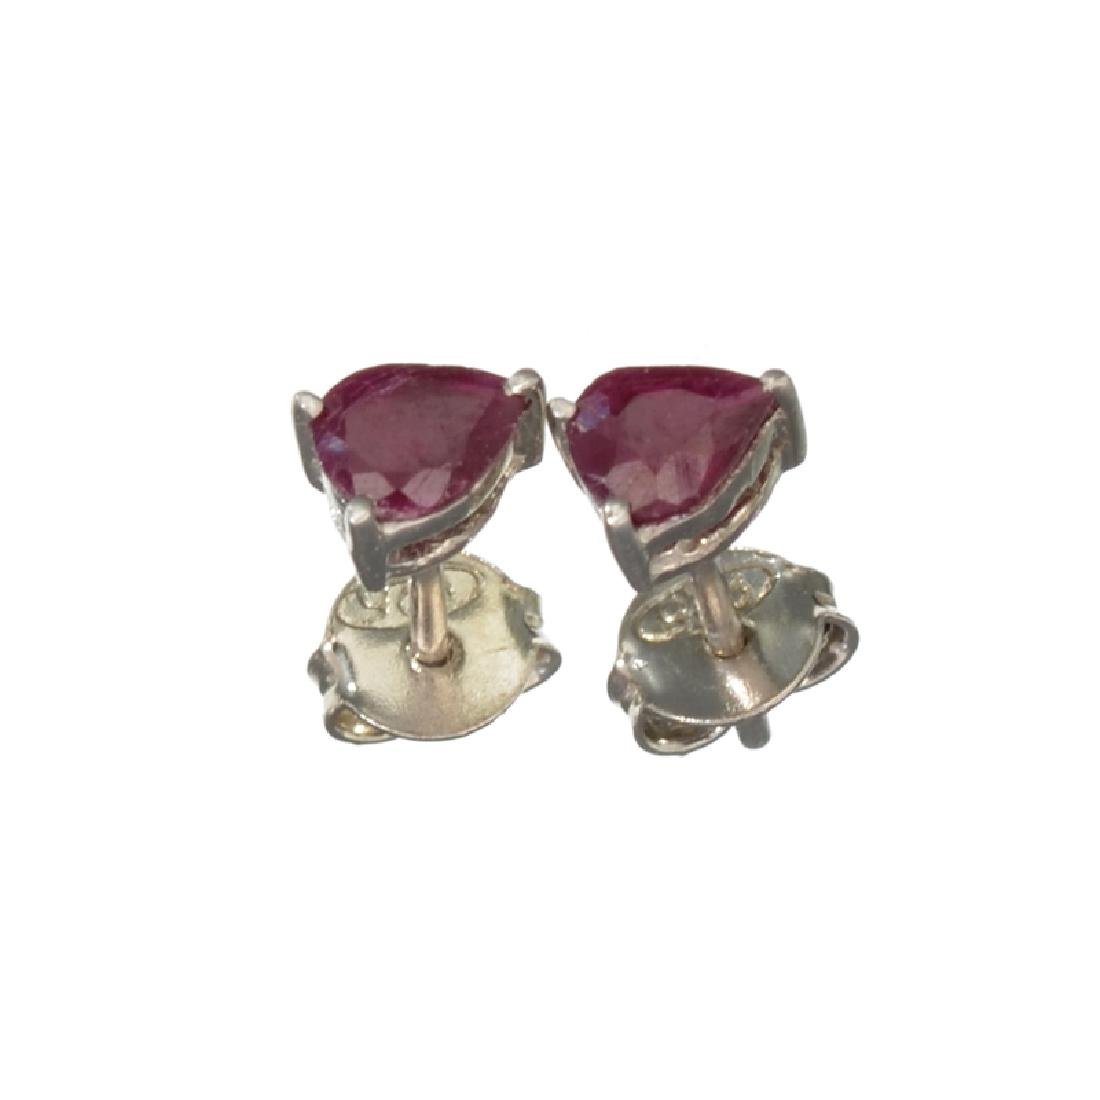 APP: 0.7k Fine Jewelry 0.50CT Pear Cut Ruby And